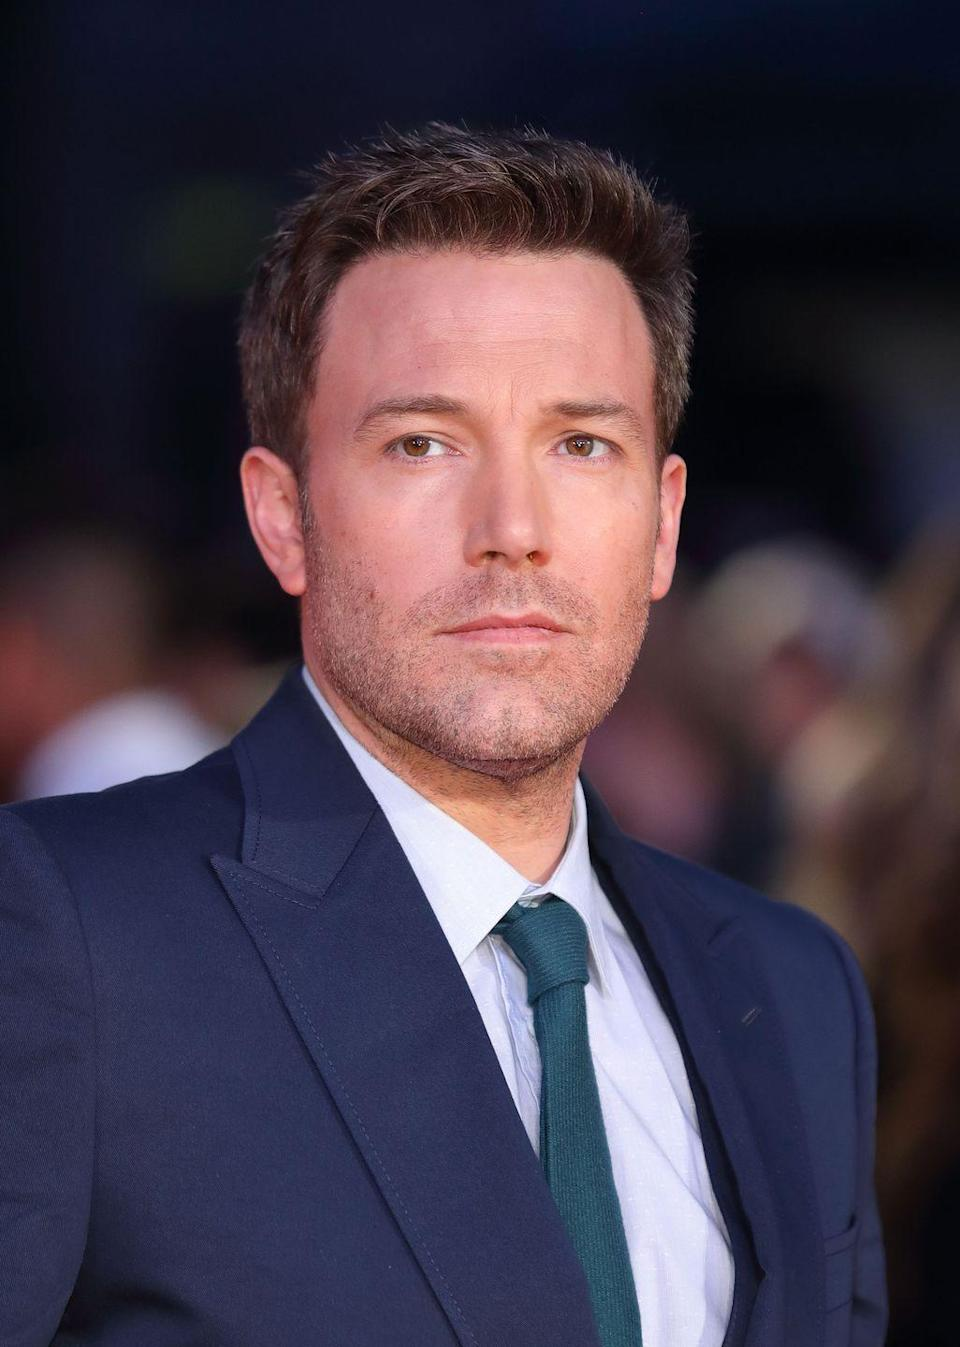 "<p>Affleck revealed during a <a href=""http://www.nme.com/news/film/ben-affleck-hates-daredevil-1916051"" rel=""nofollow noopener"" target=""_blank"" data-ylk=""slk:TimesTalk"" class=""link rapid-noclick-resp"">TimesTalk</a> he regretted doing the 2003 superhero film, which bombed at the box office. ""Part of it was I wanted for once to get one of these movies and do it right–to do a good version. I hate <em>Daredevil</em> so much.""</p>"